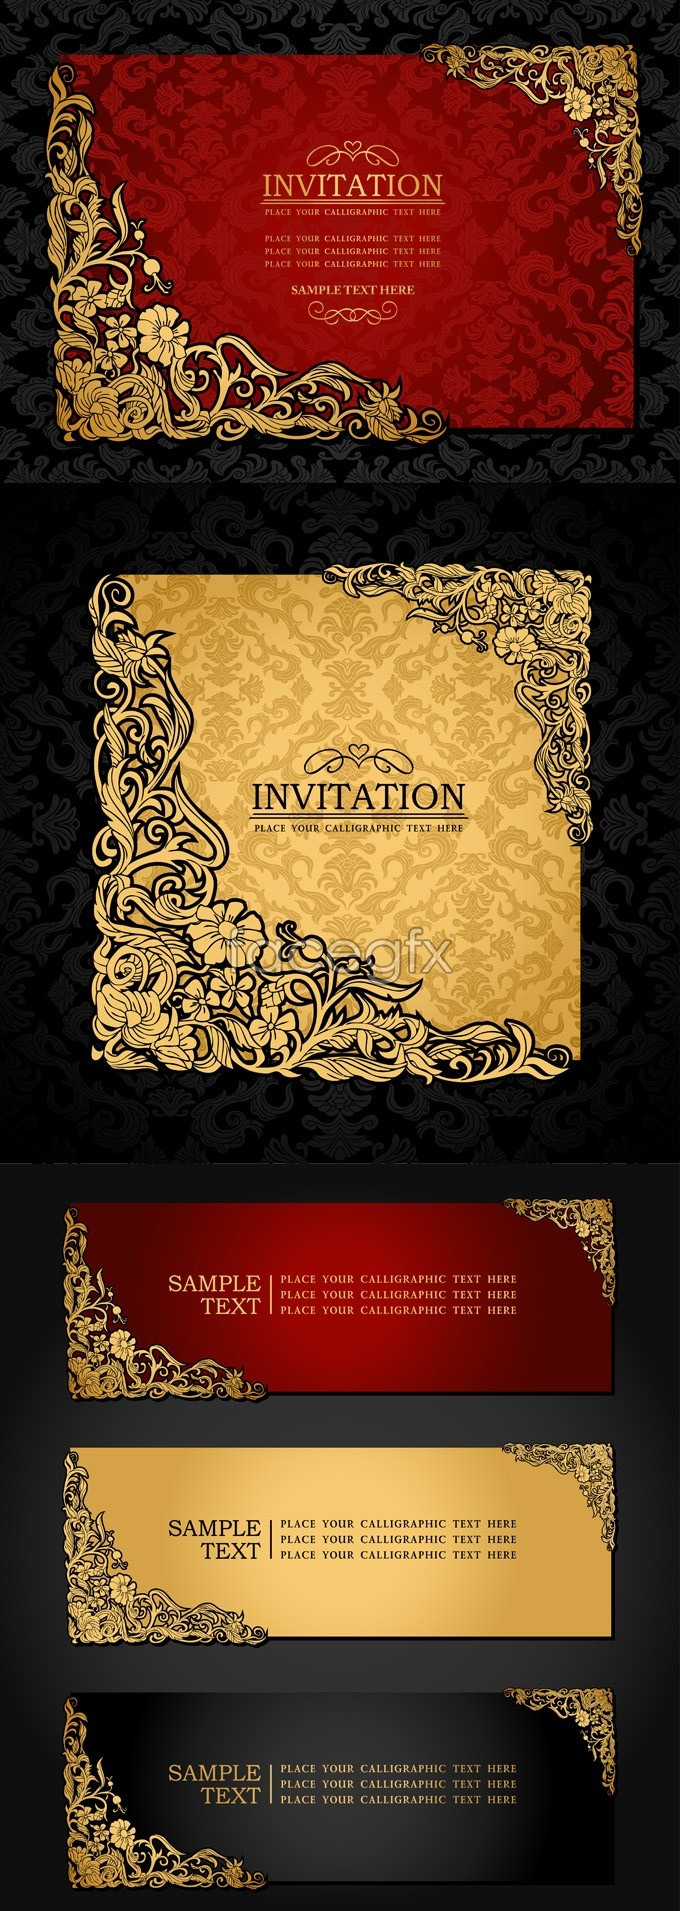 Exquisite invitation card template vector graphic